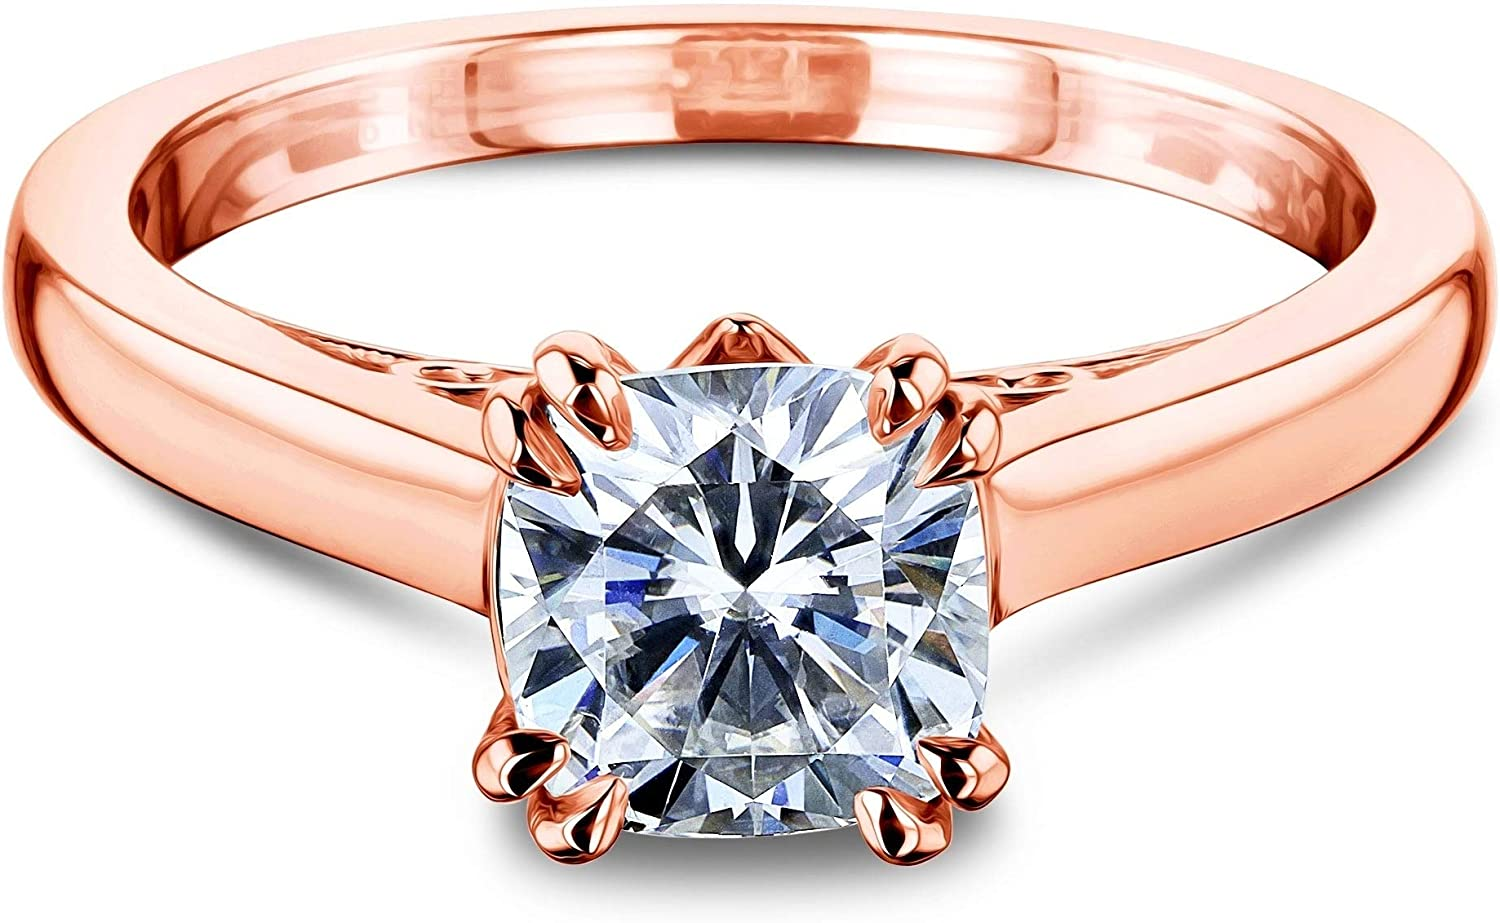 MOTIEL 1 ct. tw. OFFicial store moissanite Engagement Ri Promise Ring Ranking TOP13 for Women